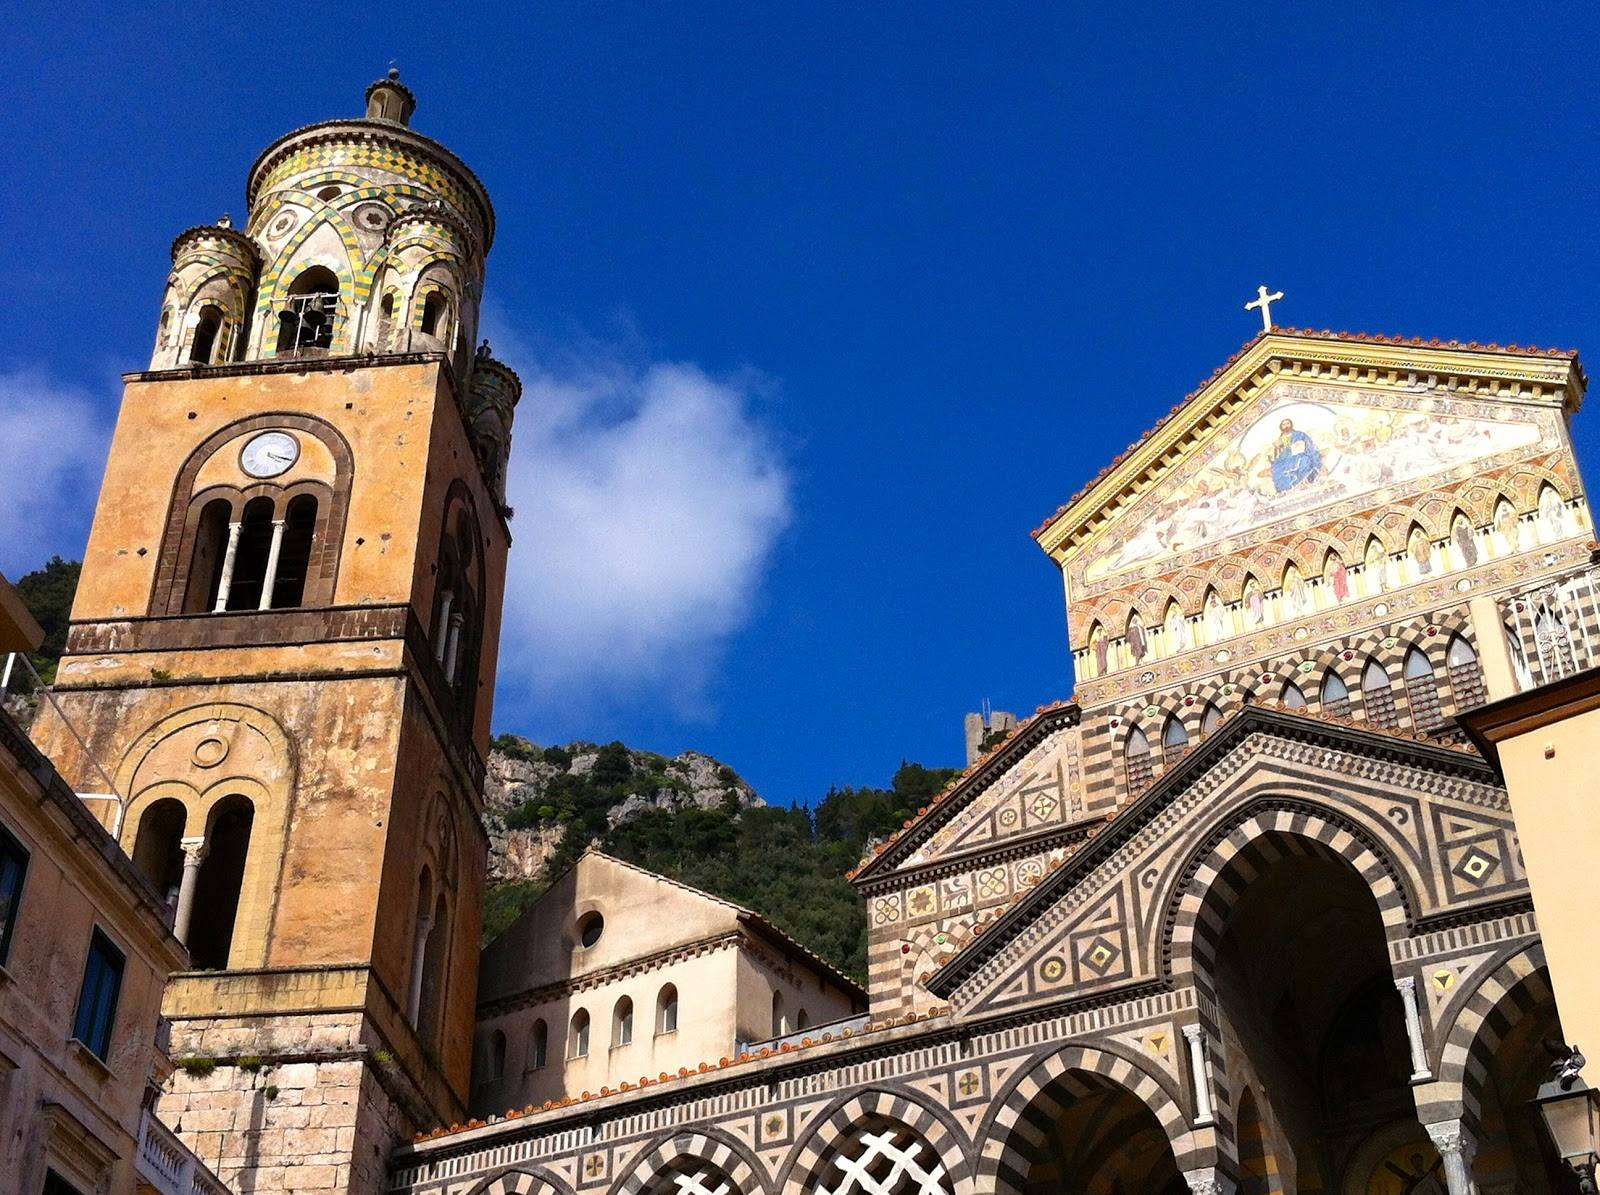 The Sant'Andrea Cathedral in Amalfi